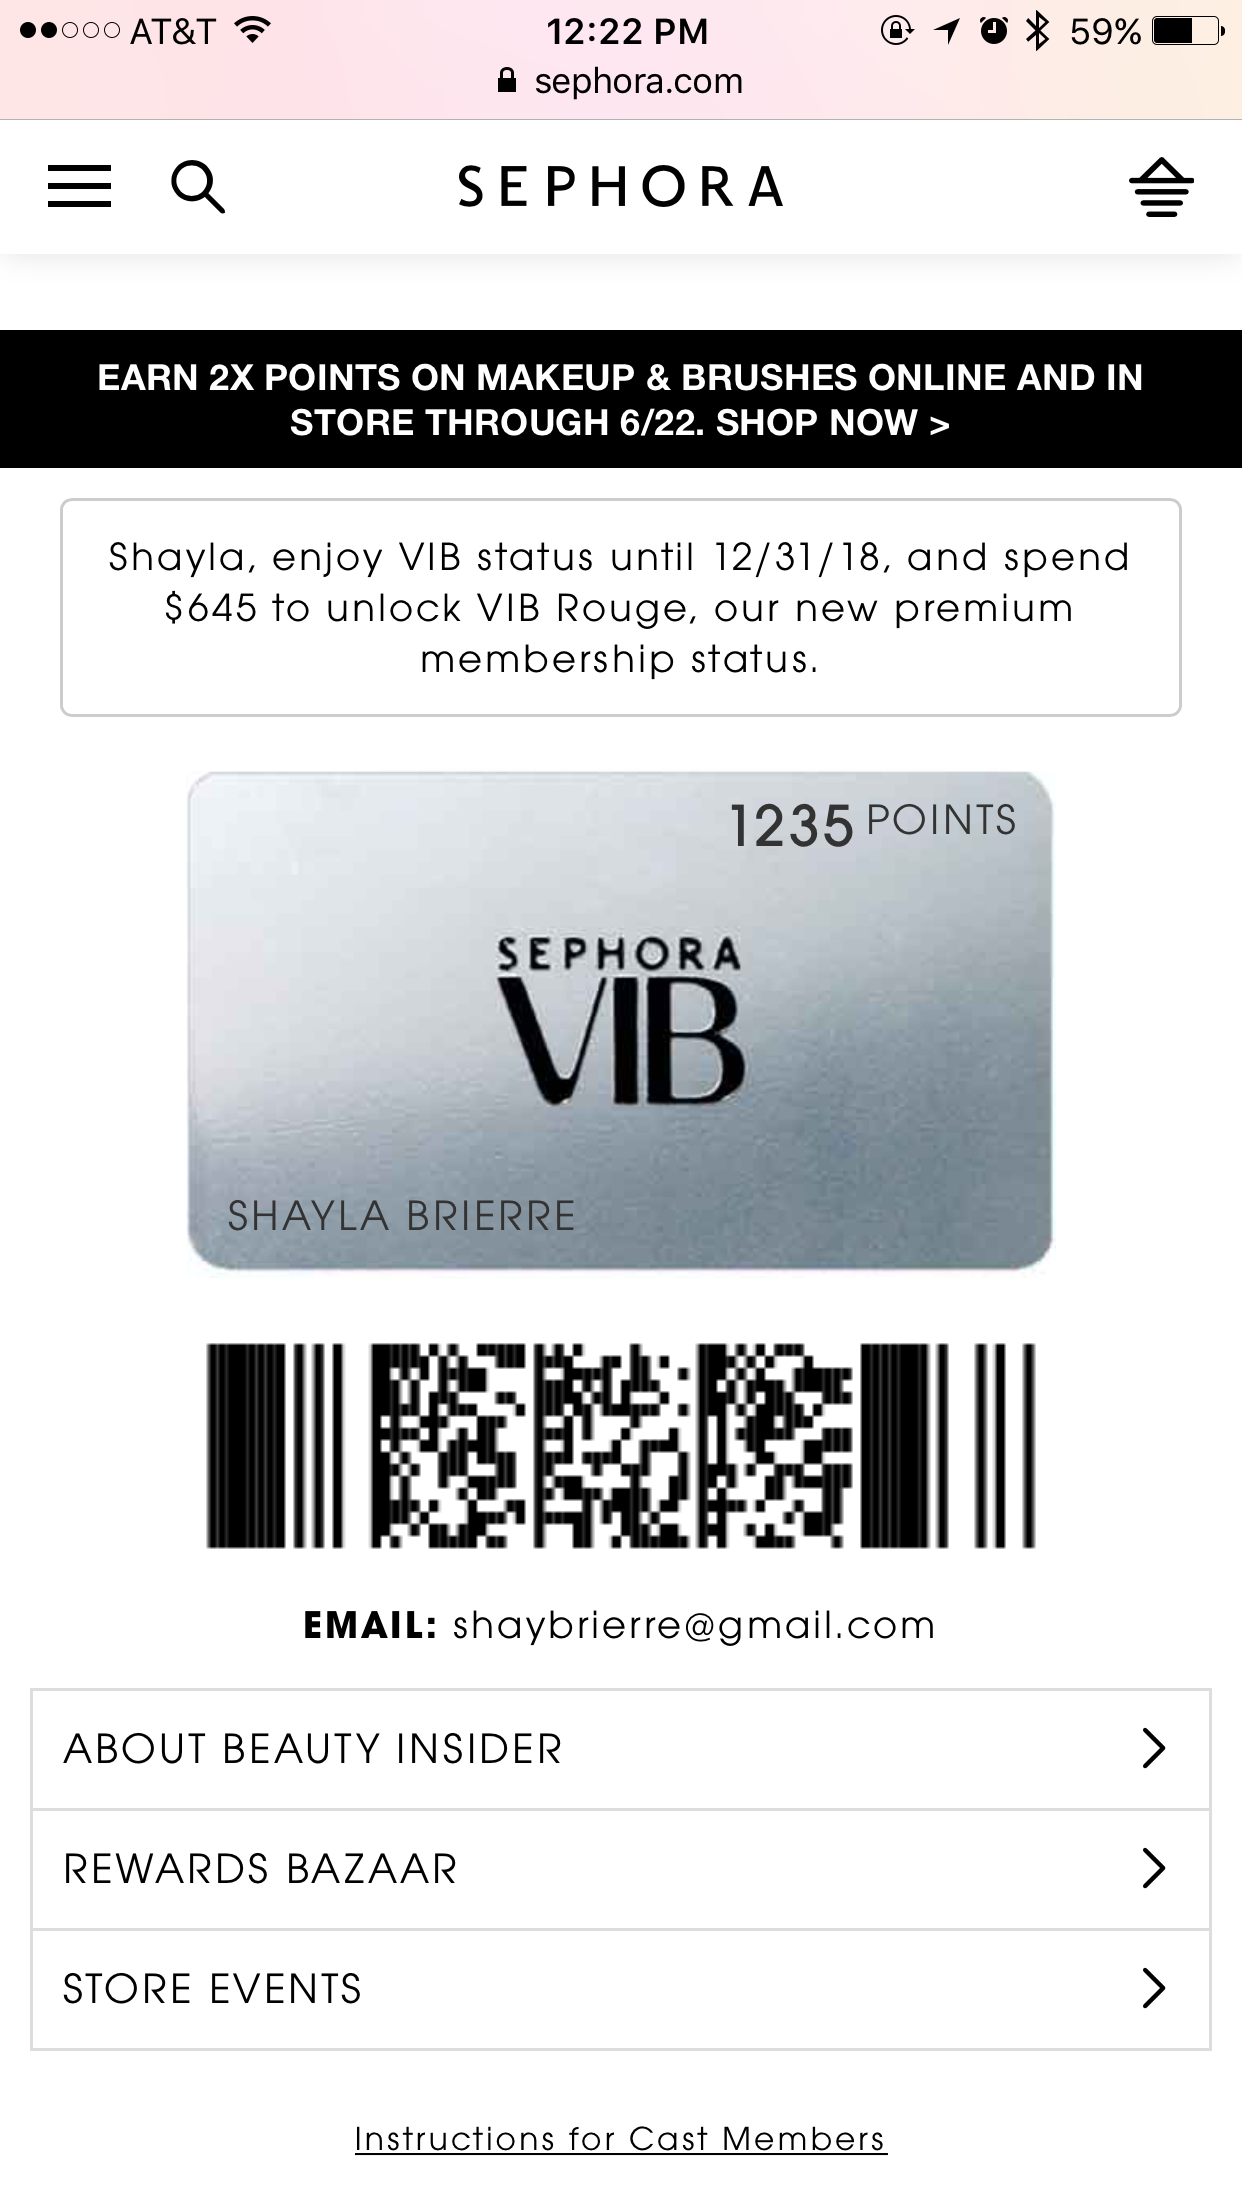 How To Use Sephora Beauty Insider Card Online August 2018 Coupons